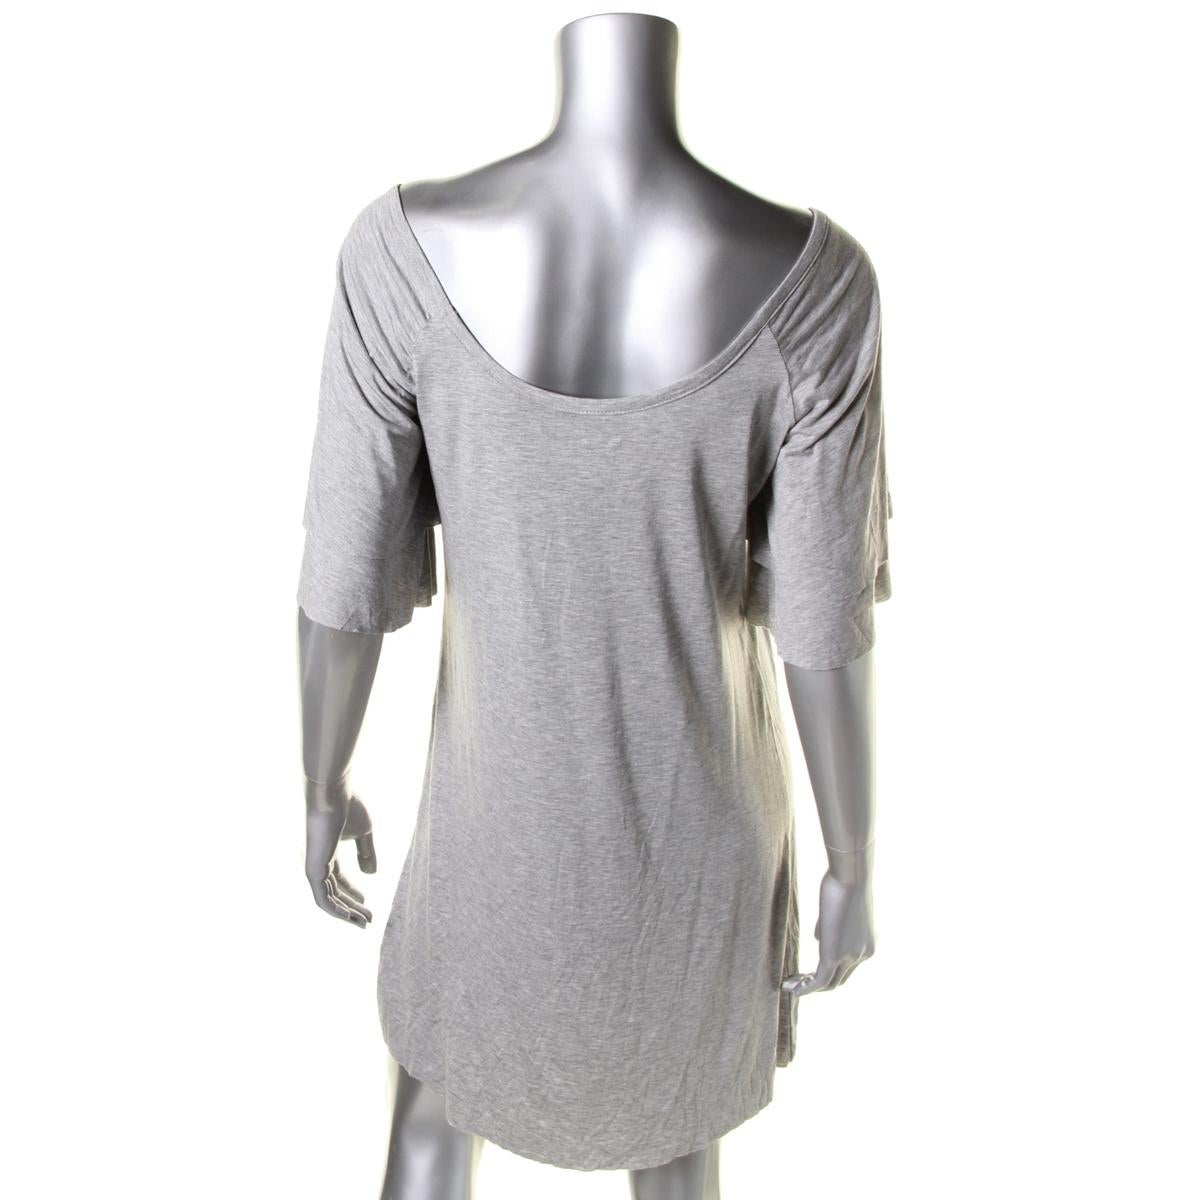 6bdf339de92ba Shop Three Dots Womens T-Shirt Dress Ruched Neck Short Sleeves - Free  Shipping On Orders Over  45 - Overstock - 19569063